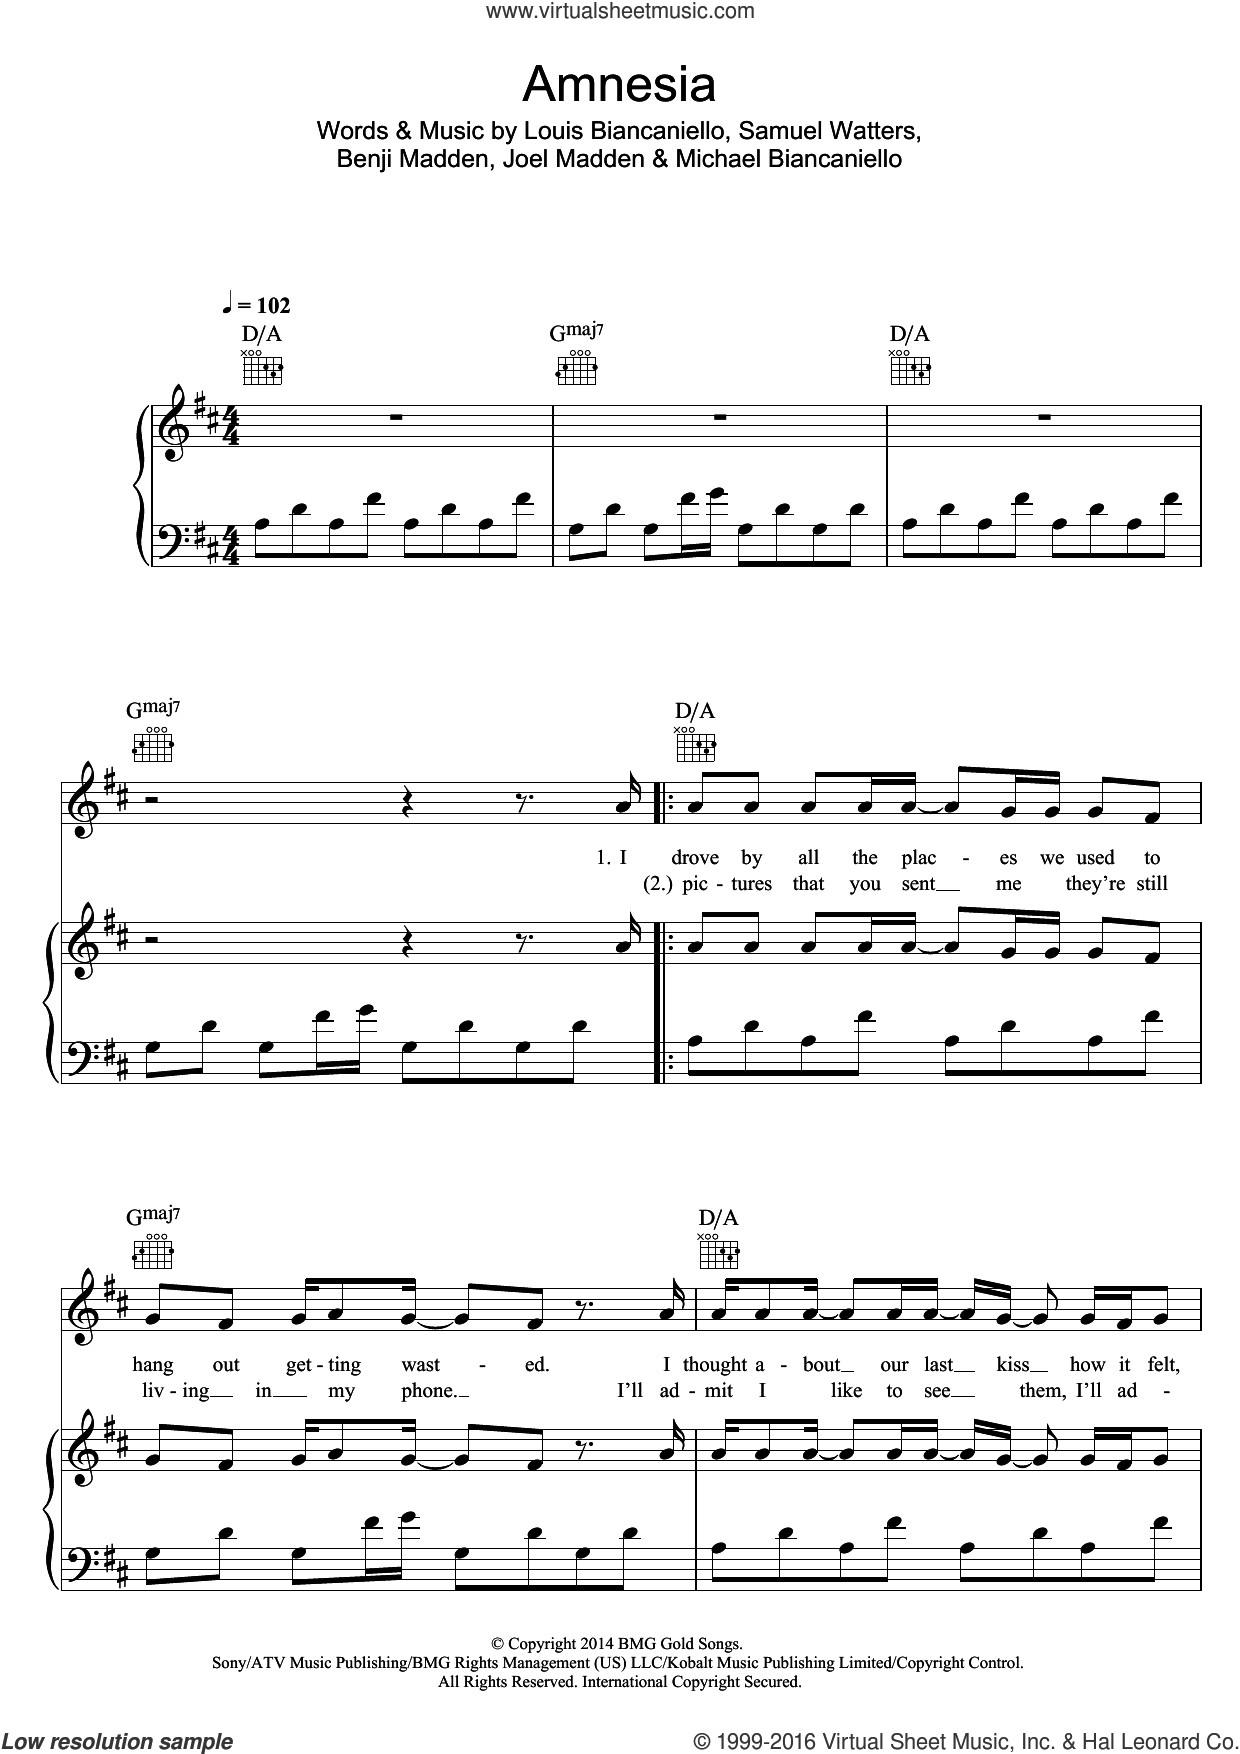 Amnesia sheet music for voice, piano or guitar by 5 Seconds of Summer, Benji Madden, Joel Madden, Louis Biancaniello, Michael Biancaniello and Sam Watters, intermediate skill level